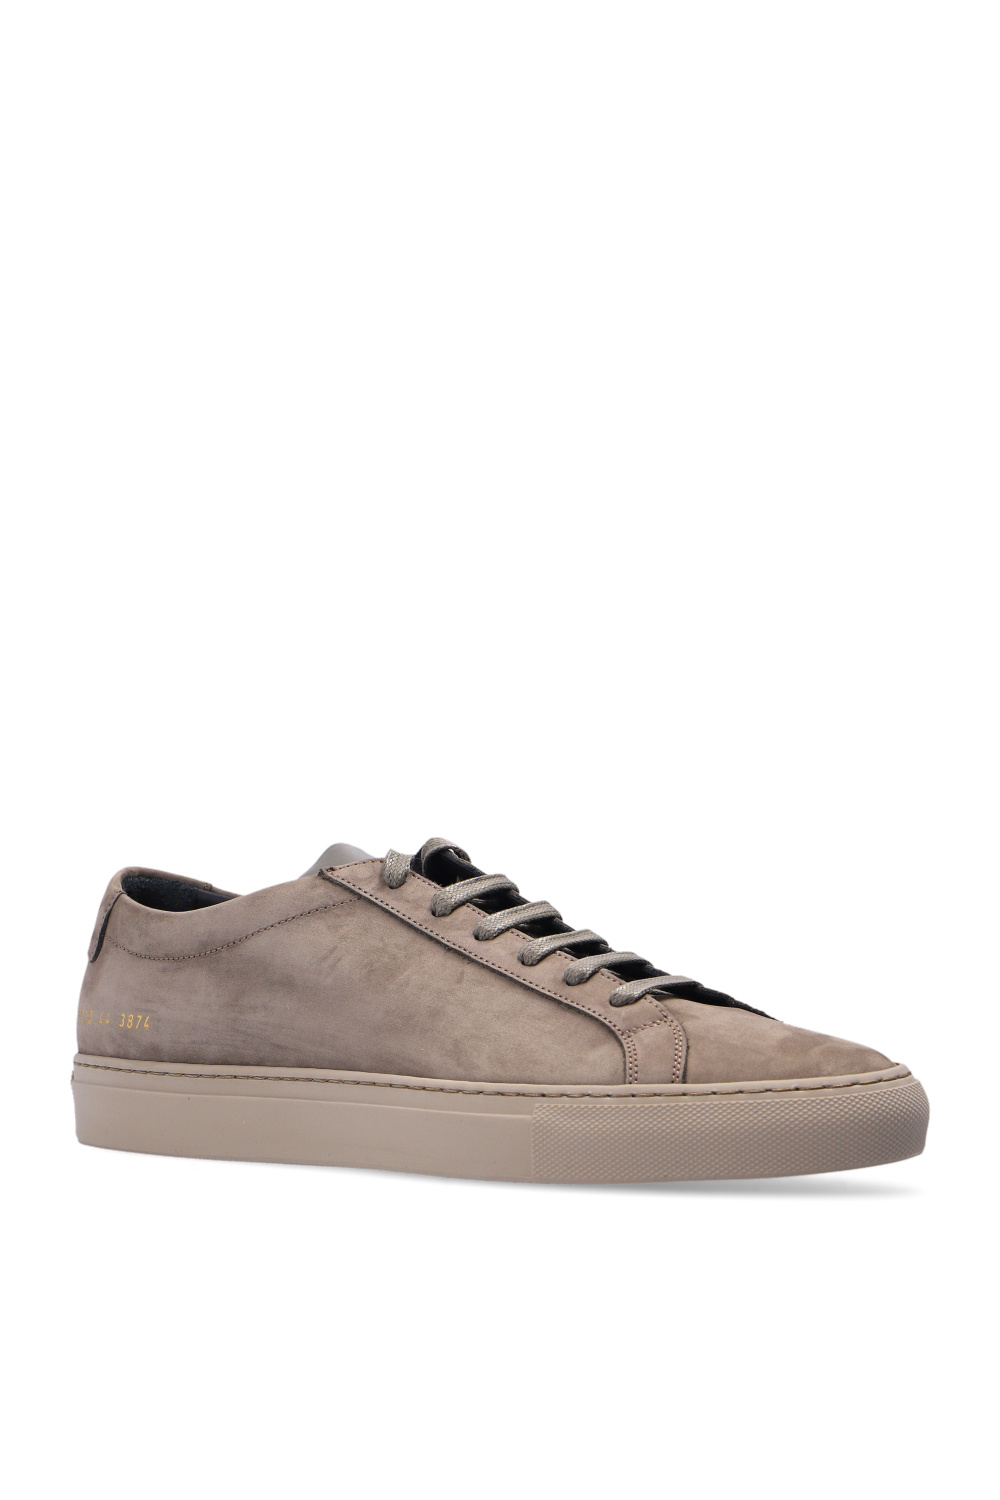 Common Projects Buty sportowe 'Achilles Low'